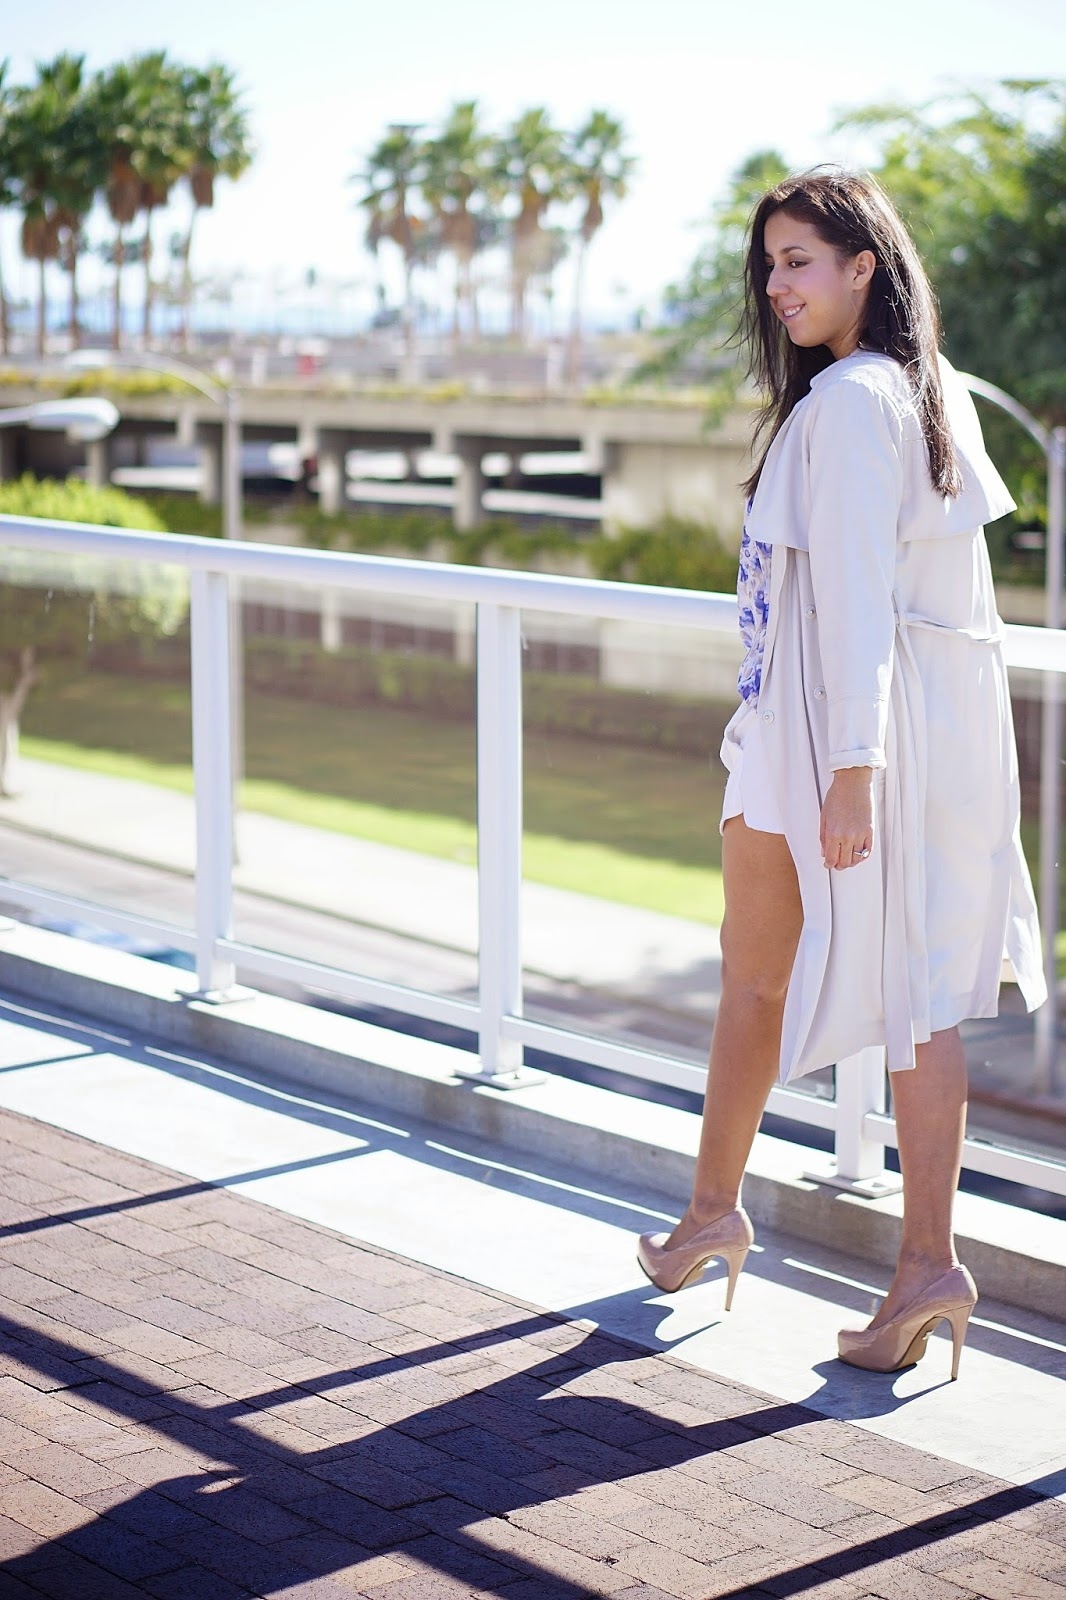 H&M trench coat, Flowy Trench coat, How to wear a Trench Coat, LC Lauren Conrad, Lauren Conrad Print Chiffon top, Nude Pumps, Simply Vera nude heels, White Skort, Forever 21 White Skort,